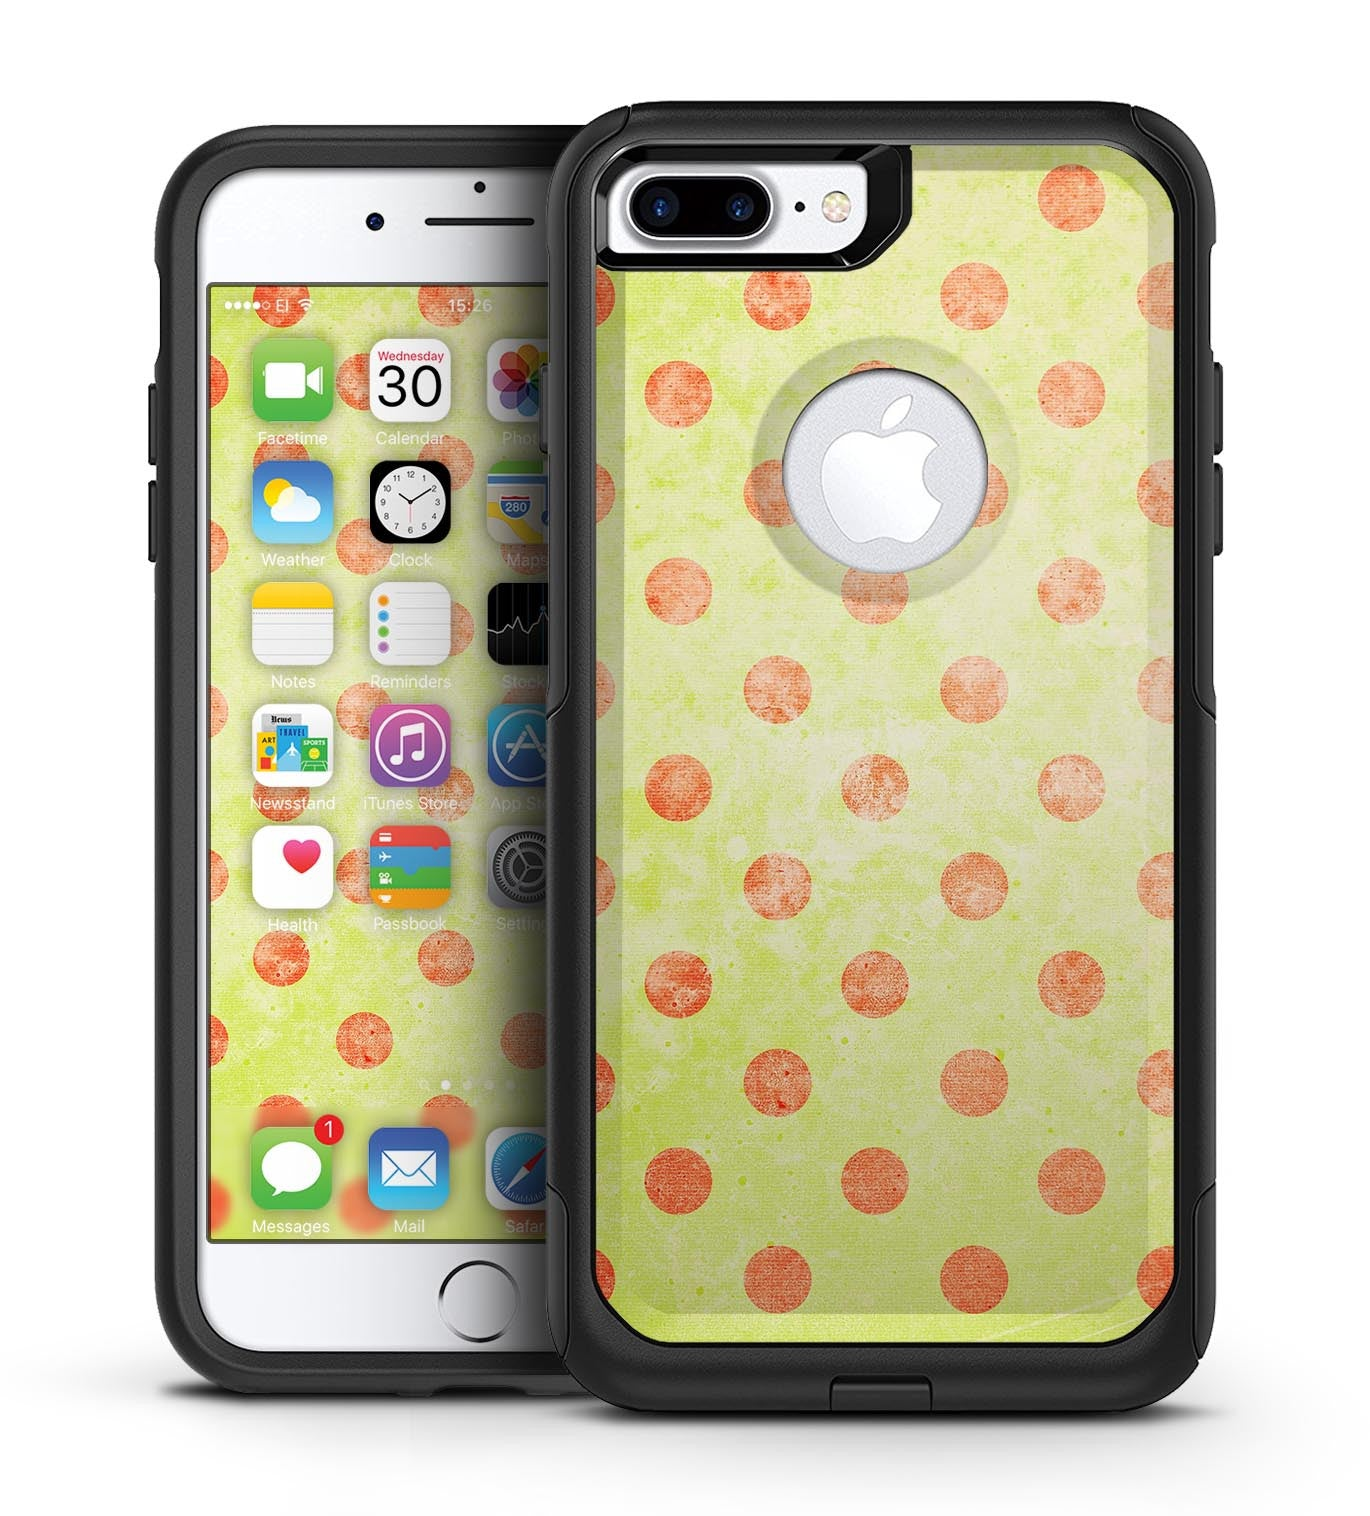 Coral Polka Dots Over Grunge Yellow - iPhone 7 or 7 Plus Commuter Case Skin Kit